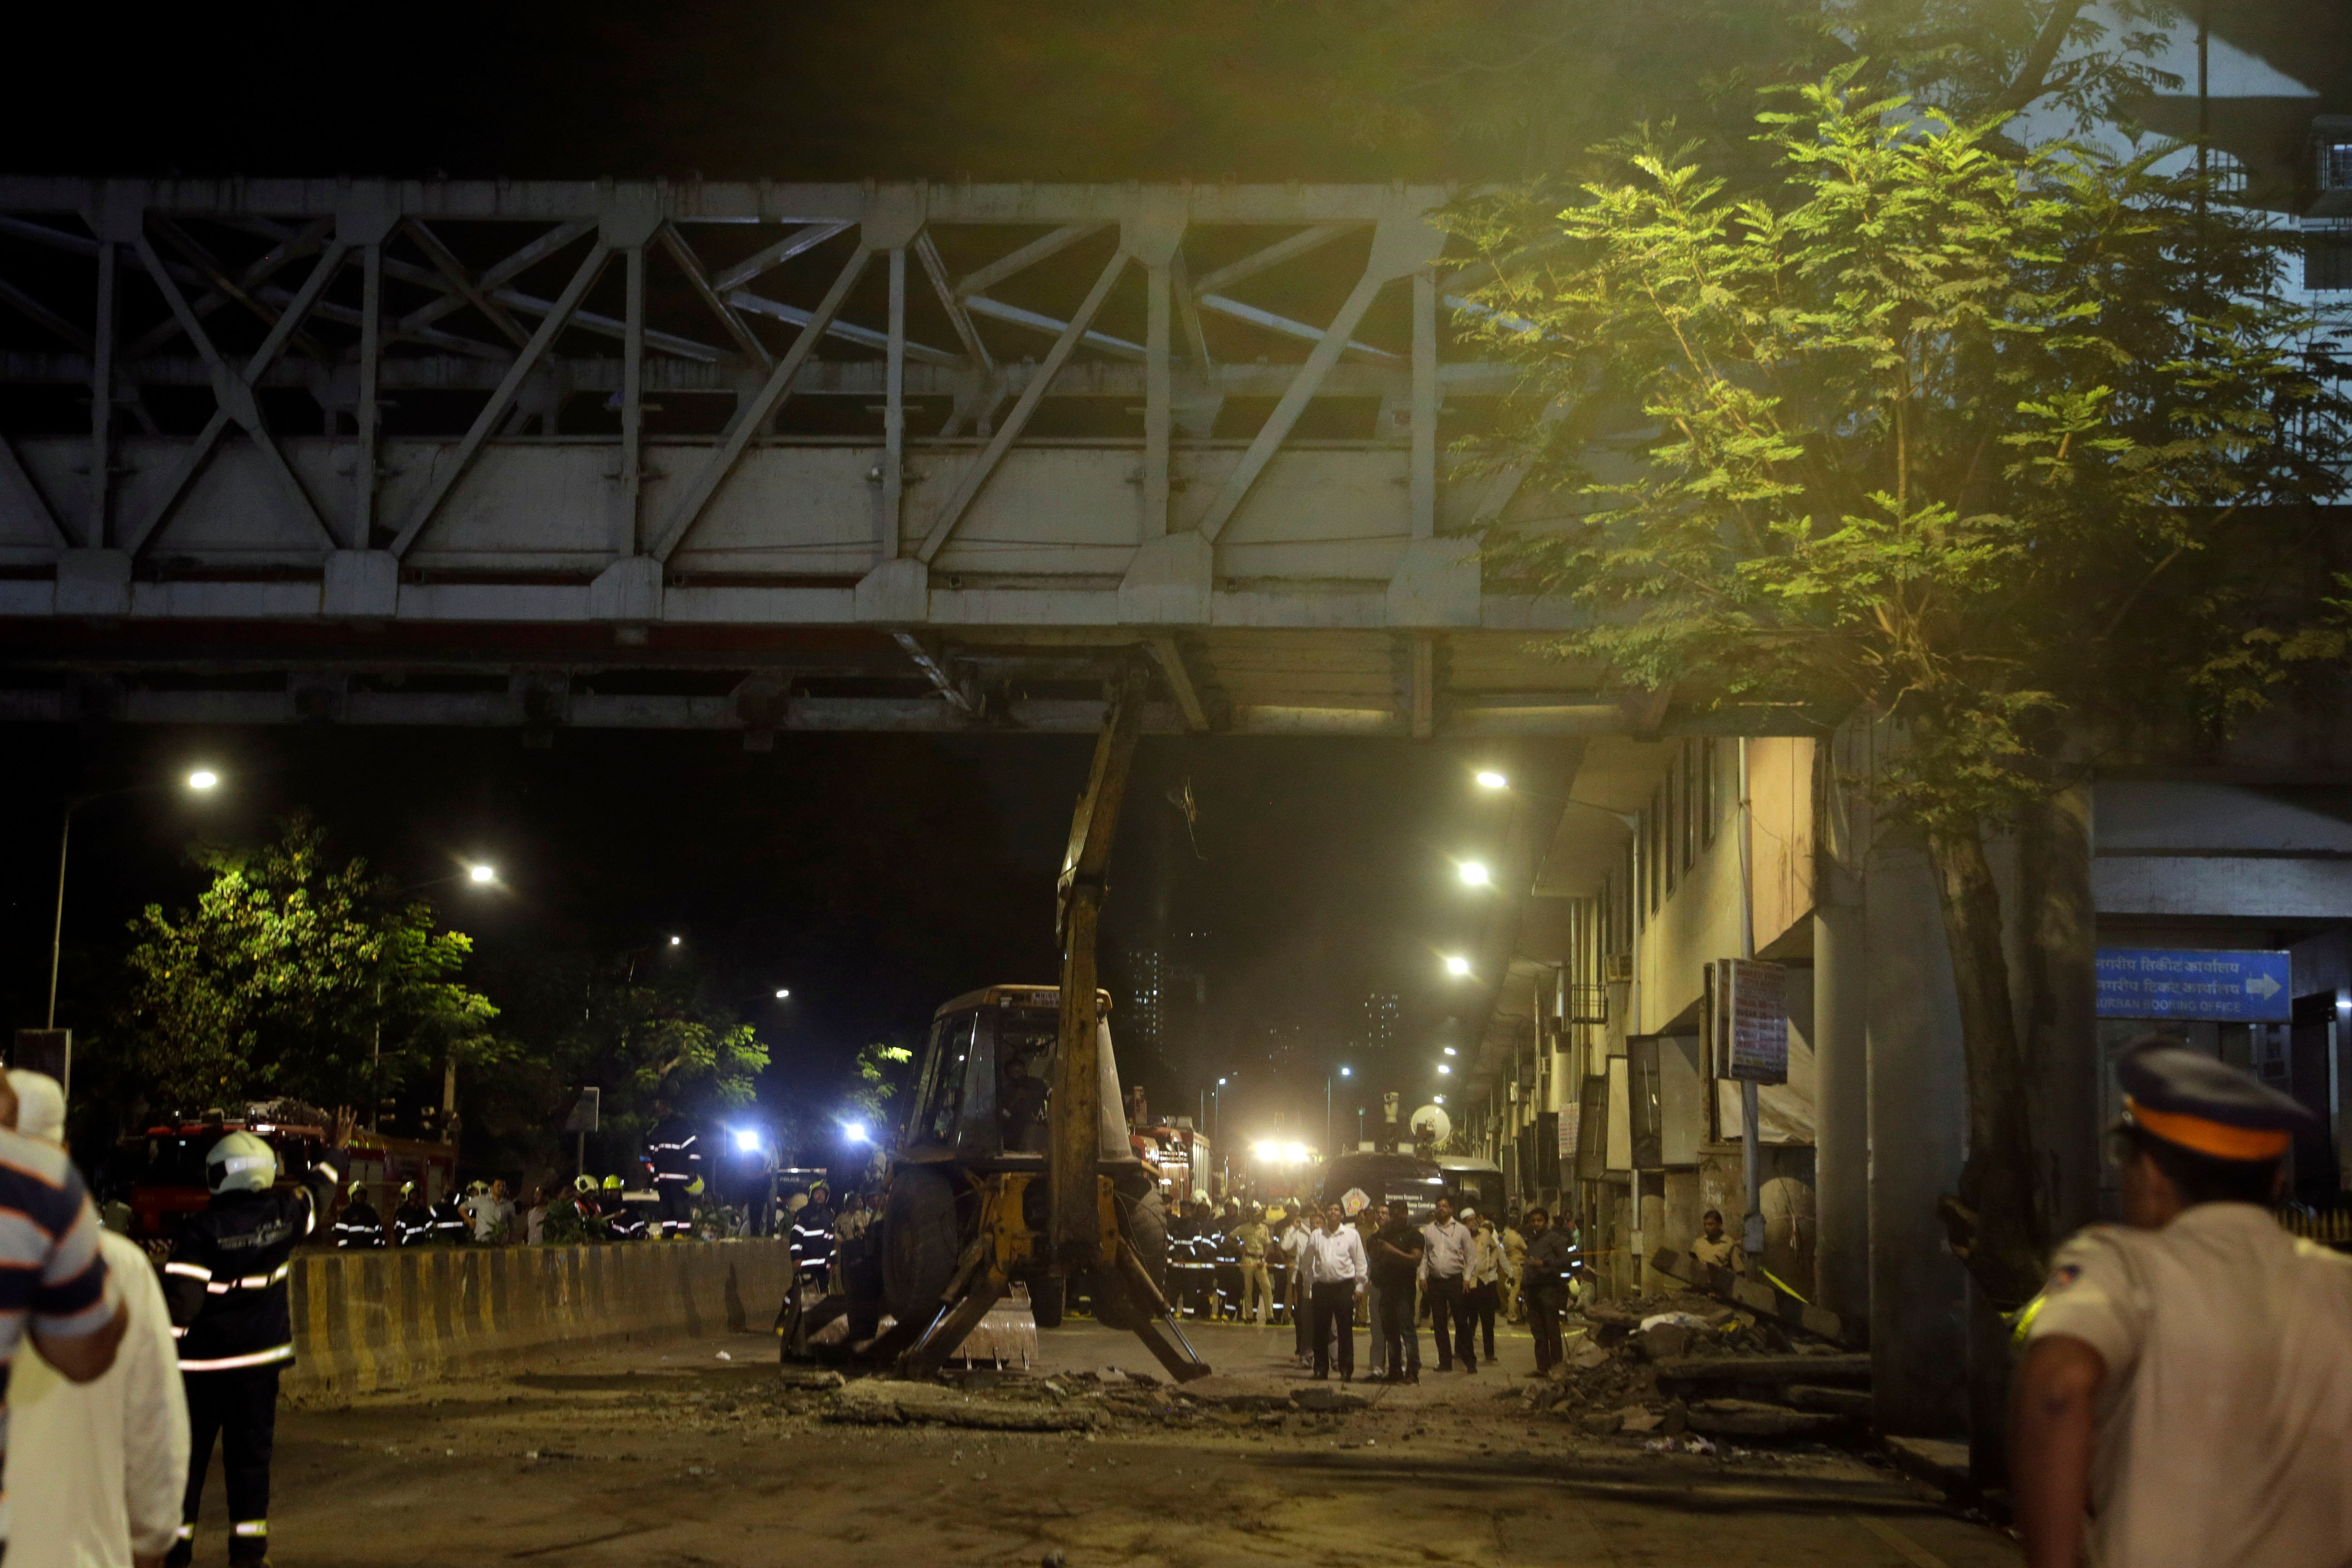 6 Killed As Footover Bridge Collapses In Mumbai, 2nd Incident In 8